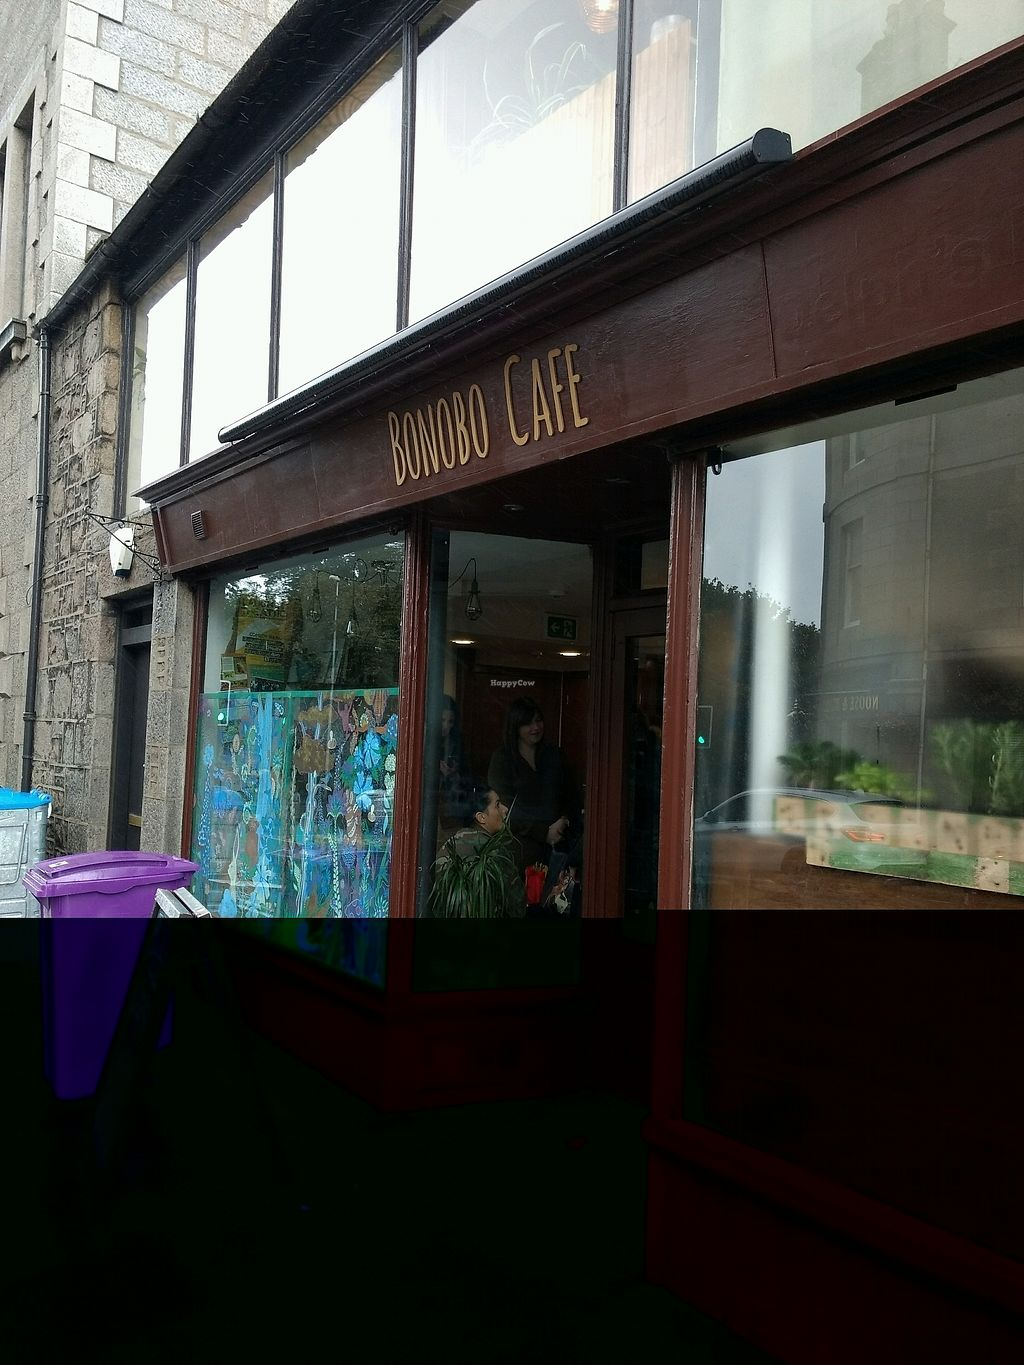 """Photo of Bonobo Cafe  by <a href=""""/members/profile/craigmc"""">craigmc</a> <br/>outside <br/> October 4, 2017  - <a href='/contact/abuse/image/71220/311850'>Report</a>"""